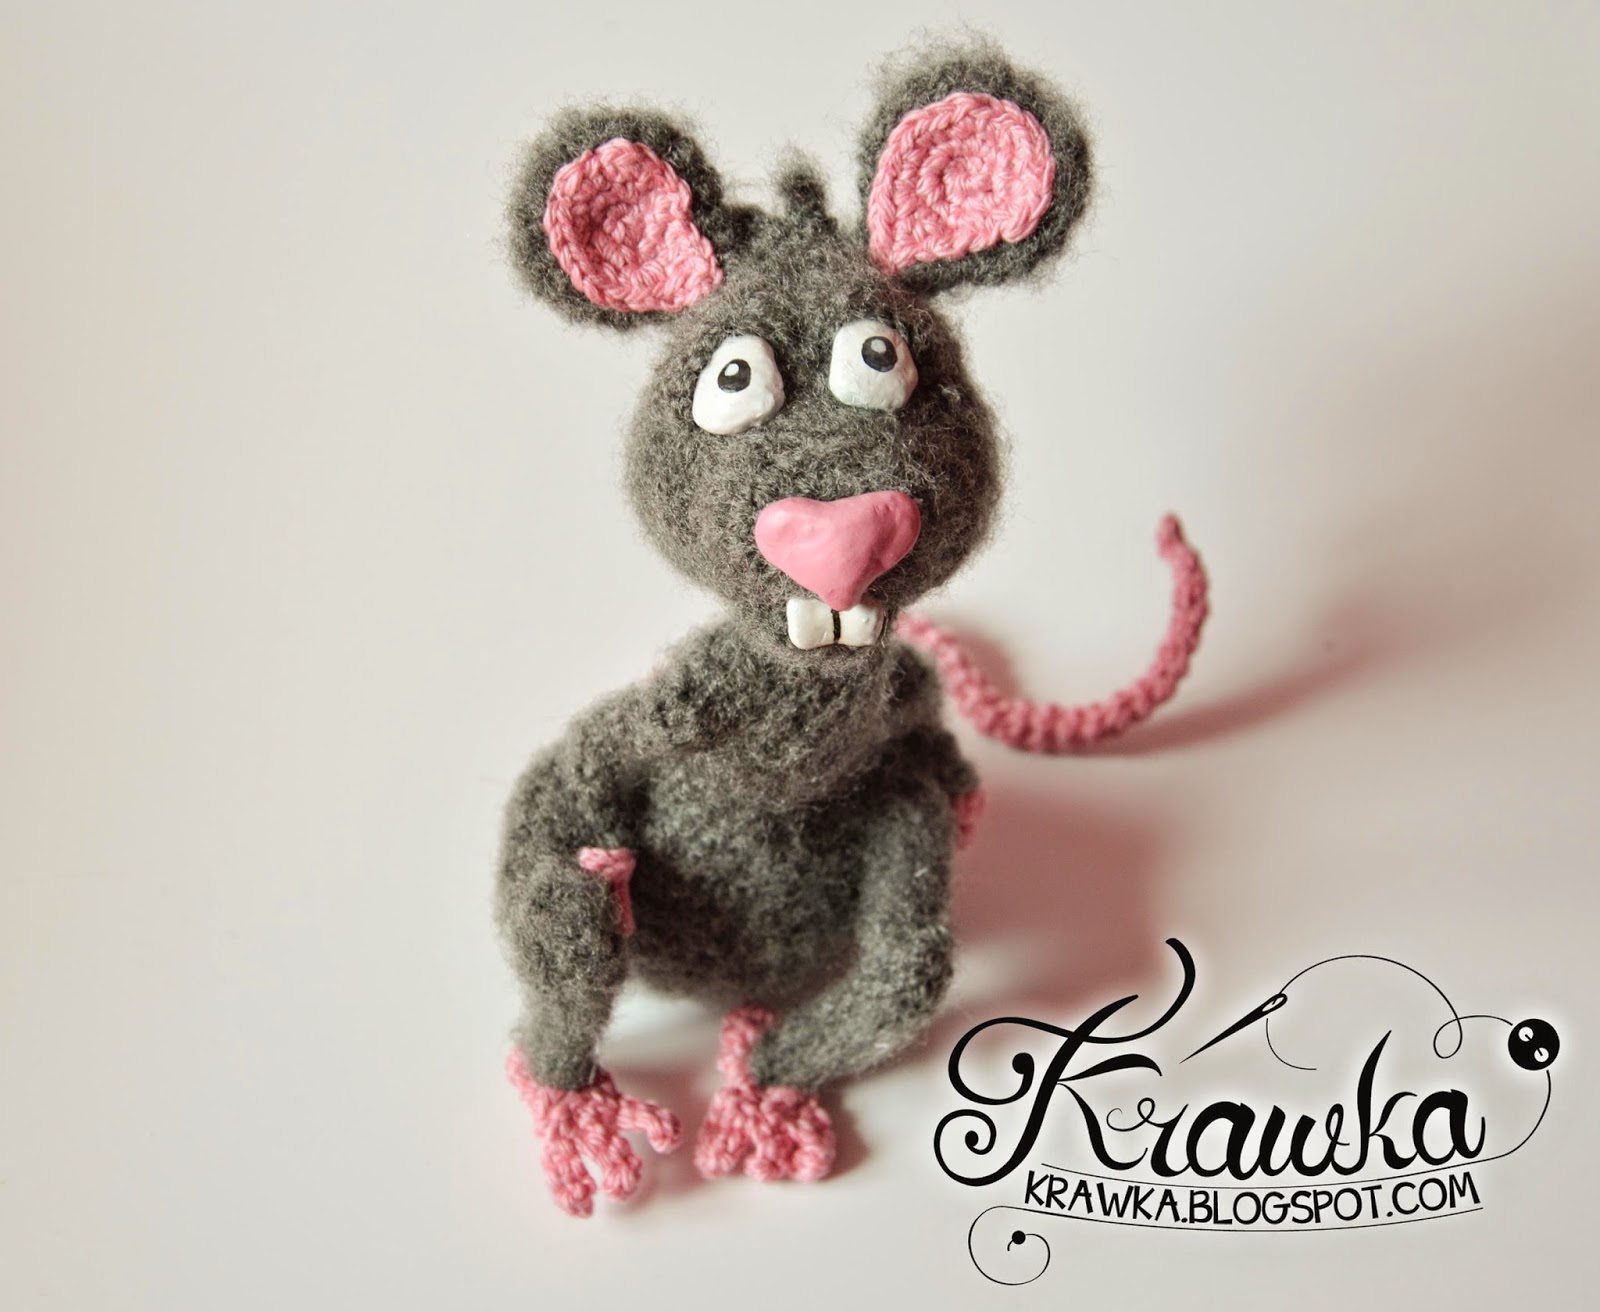 Krawka: Handmade crochet grey rat with pink nose. Cartoon rat character